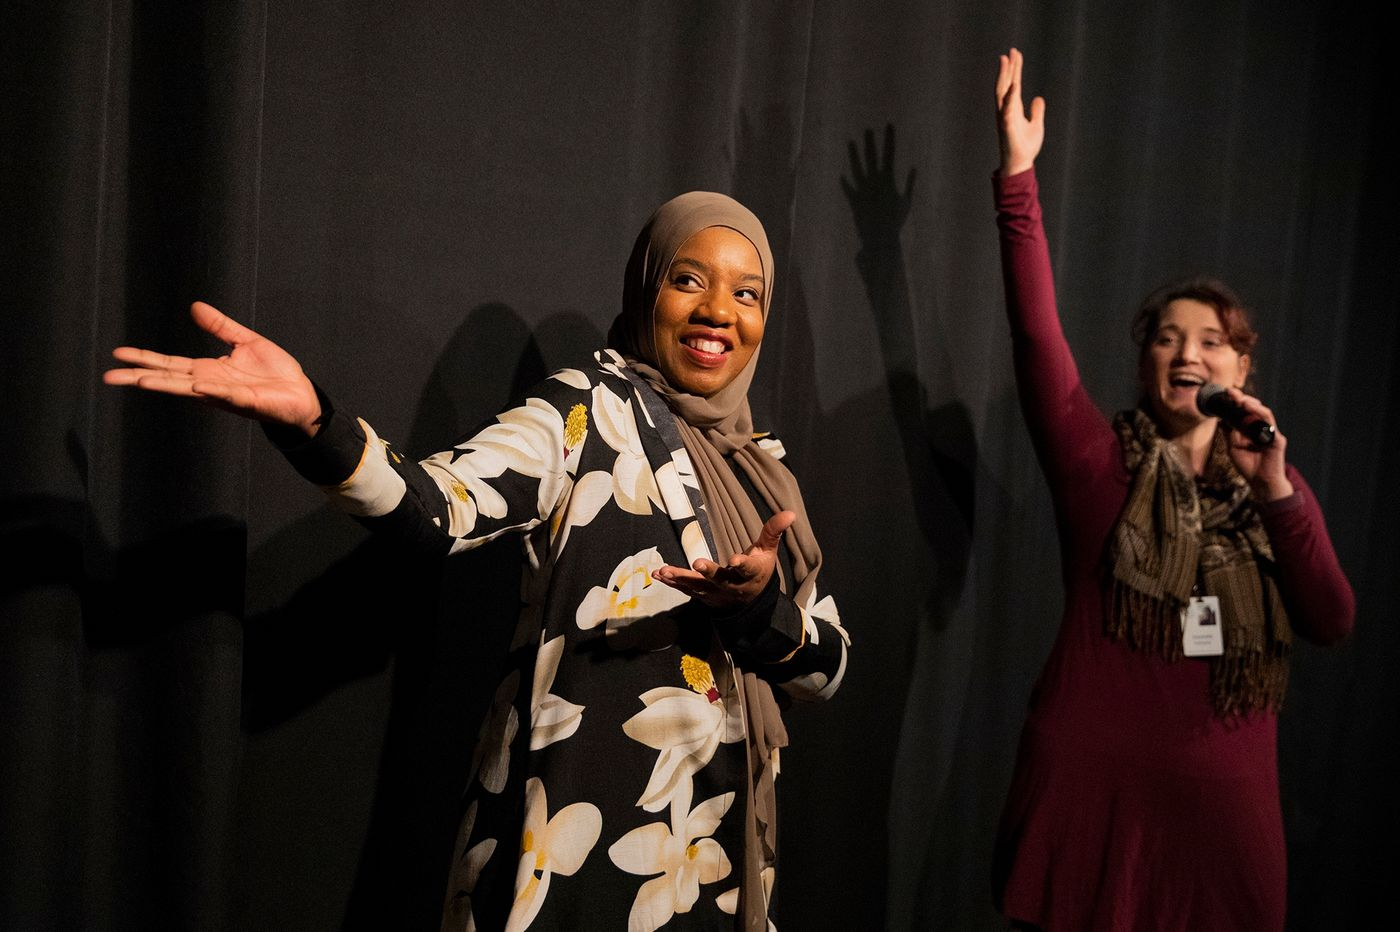 A new Please Touch play about bean pies, friendship, and Muslim American fortitude